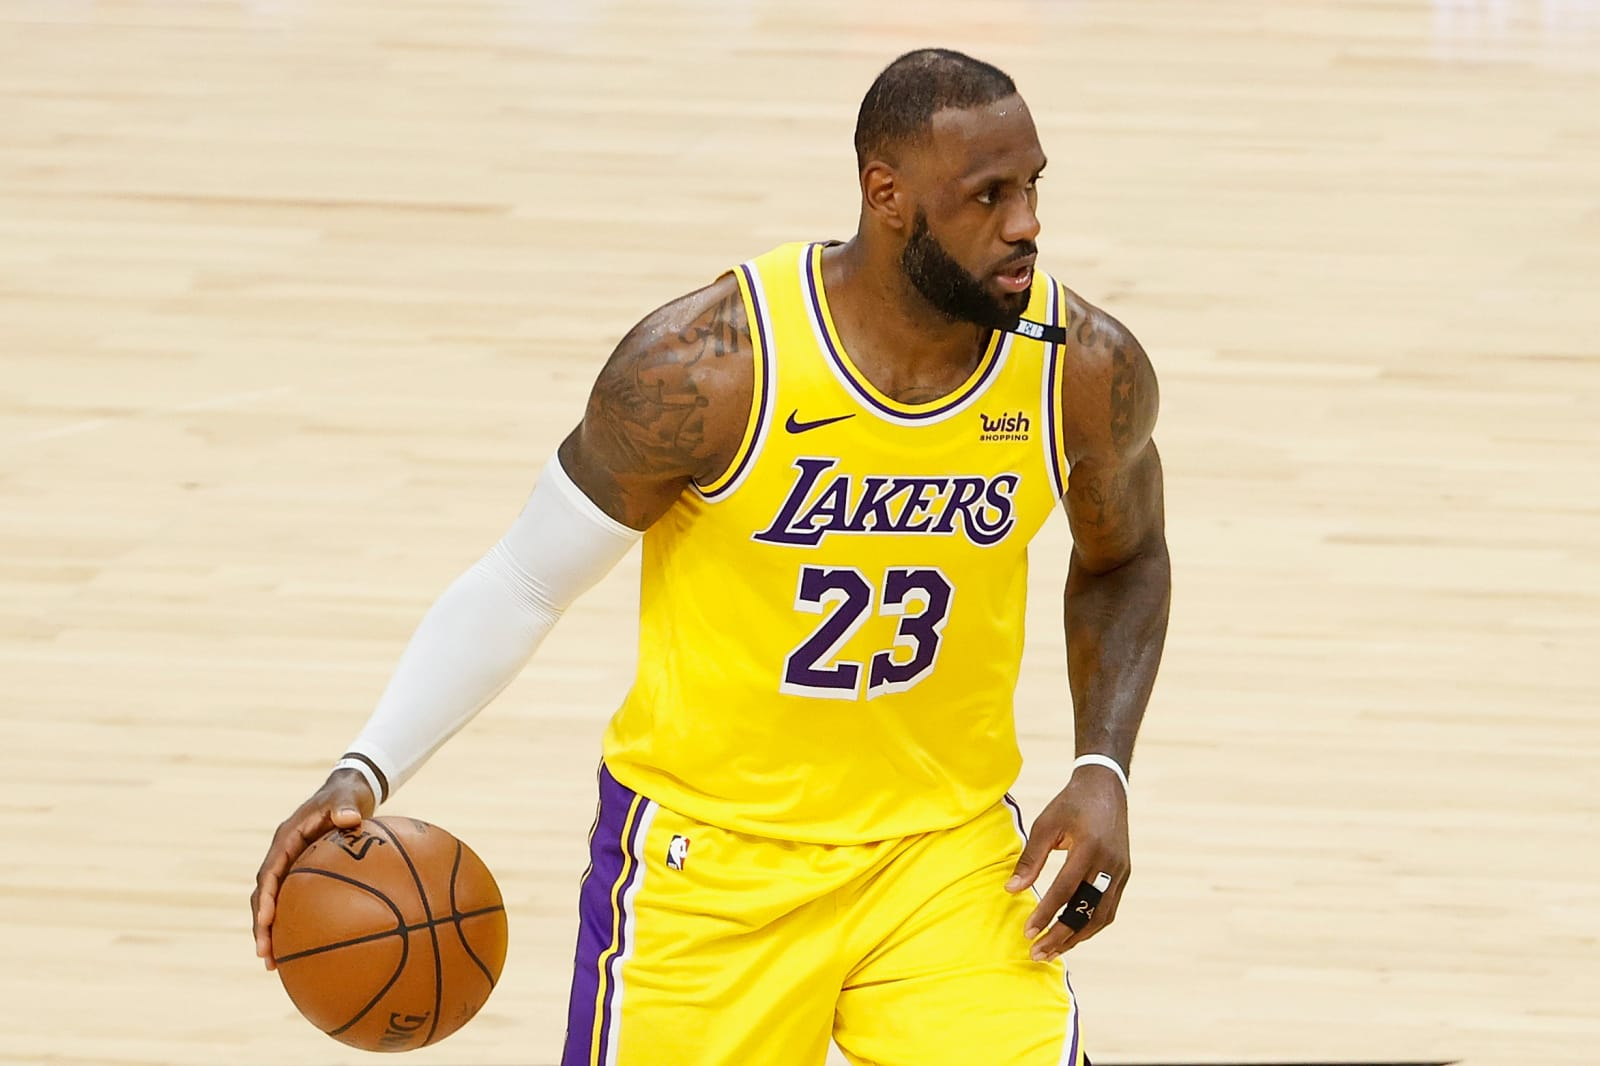 Los Angeles Lakers: 2 former LeBron James teammates to sign